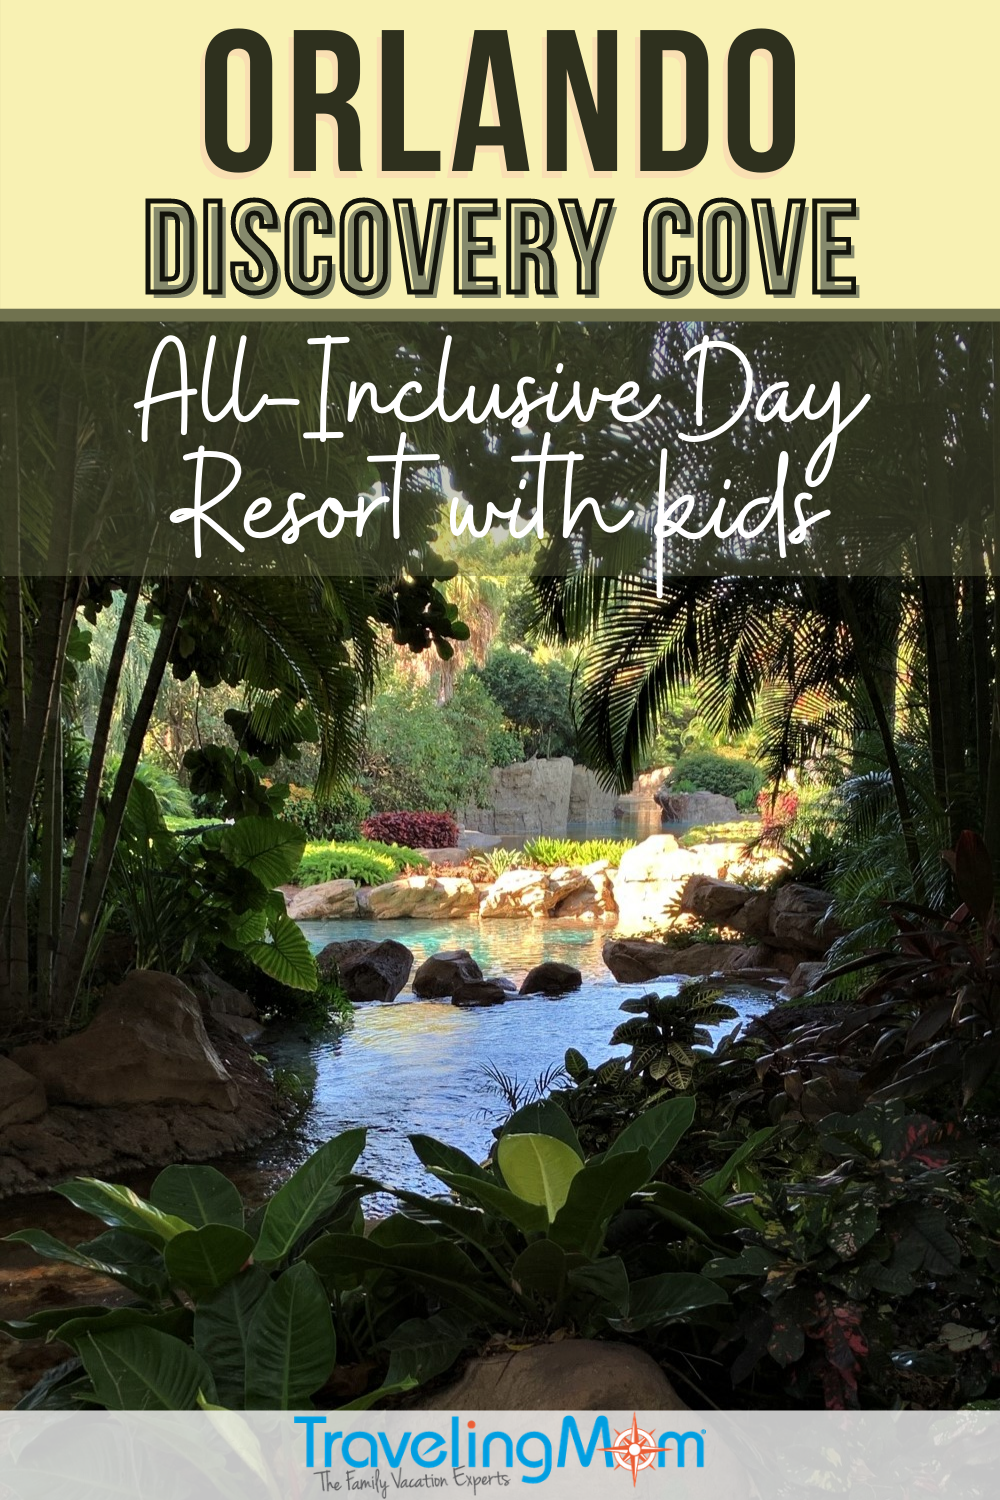 text reads discovery cove all inclusive day resort with kids with image of cove and trees